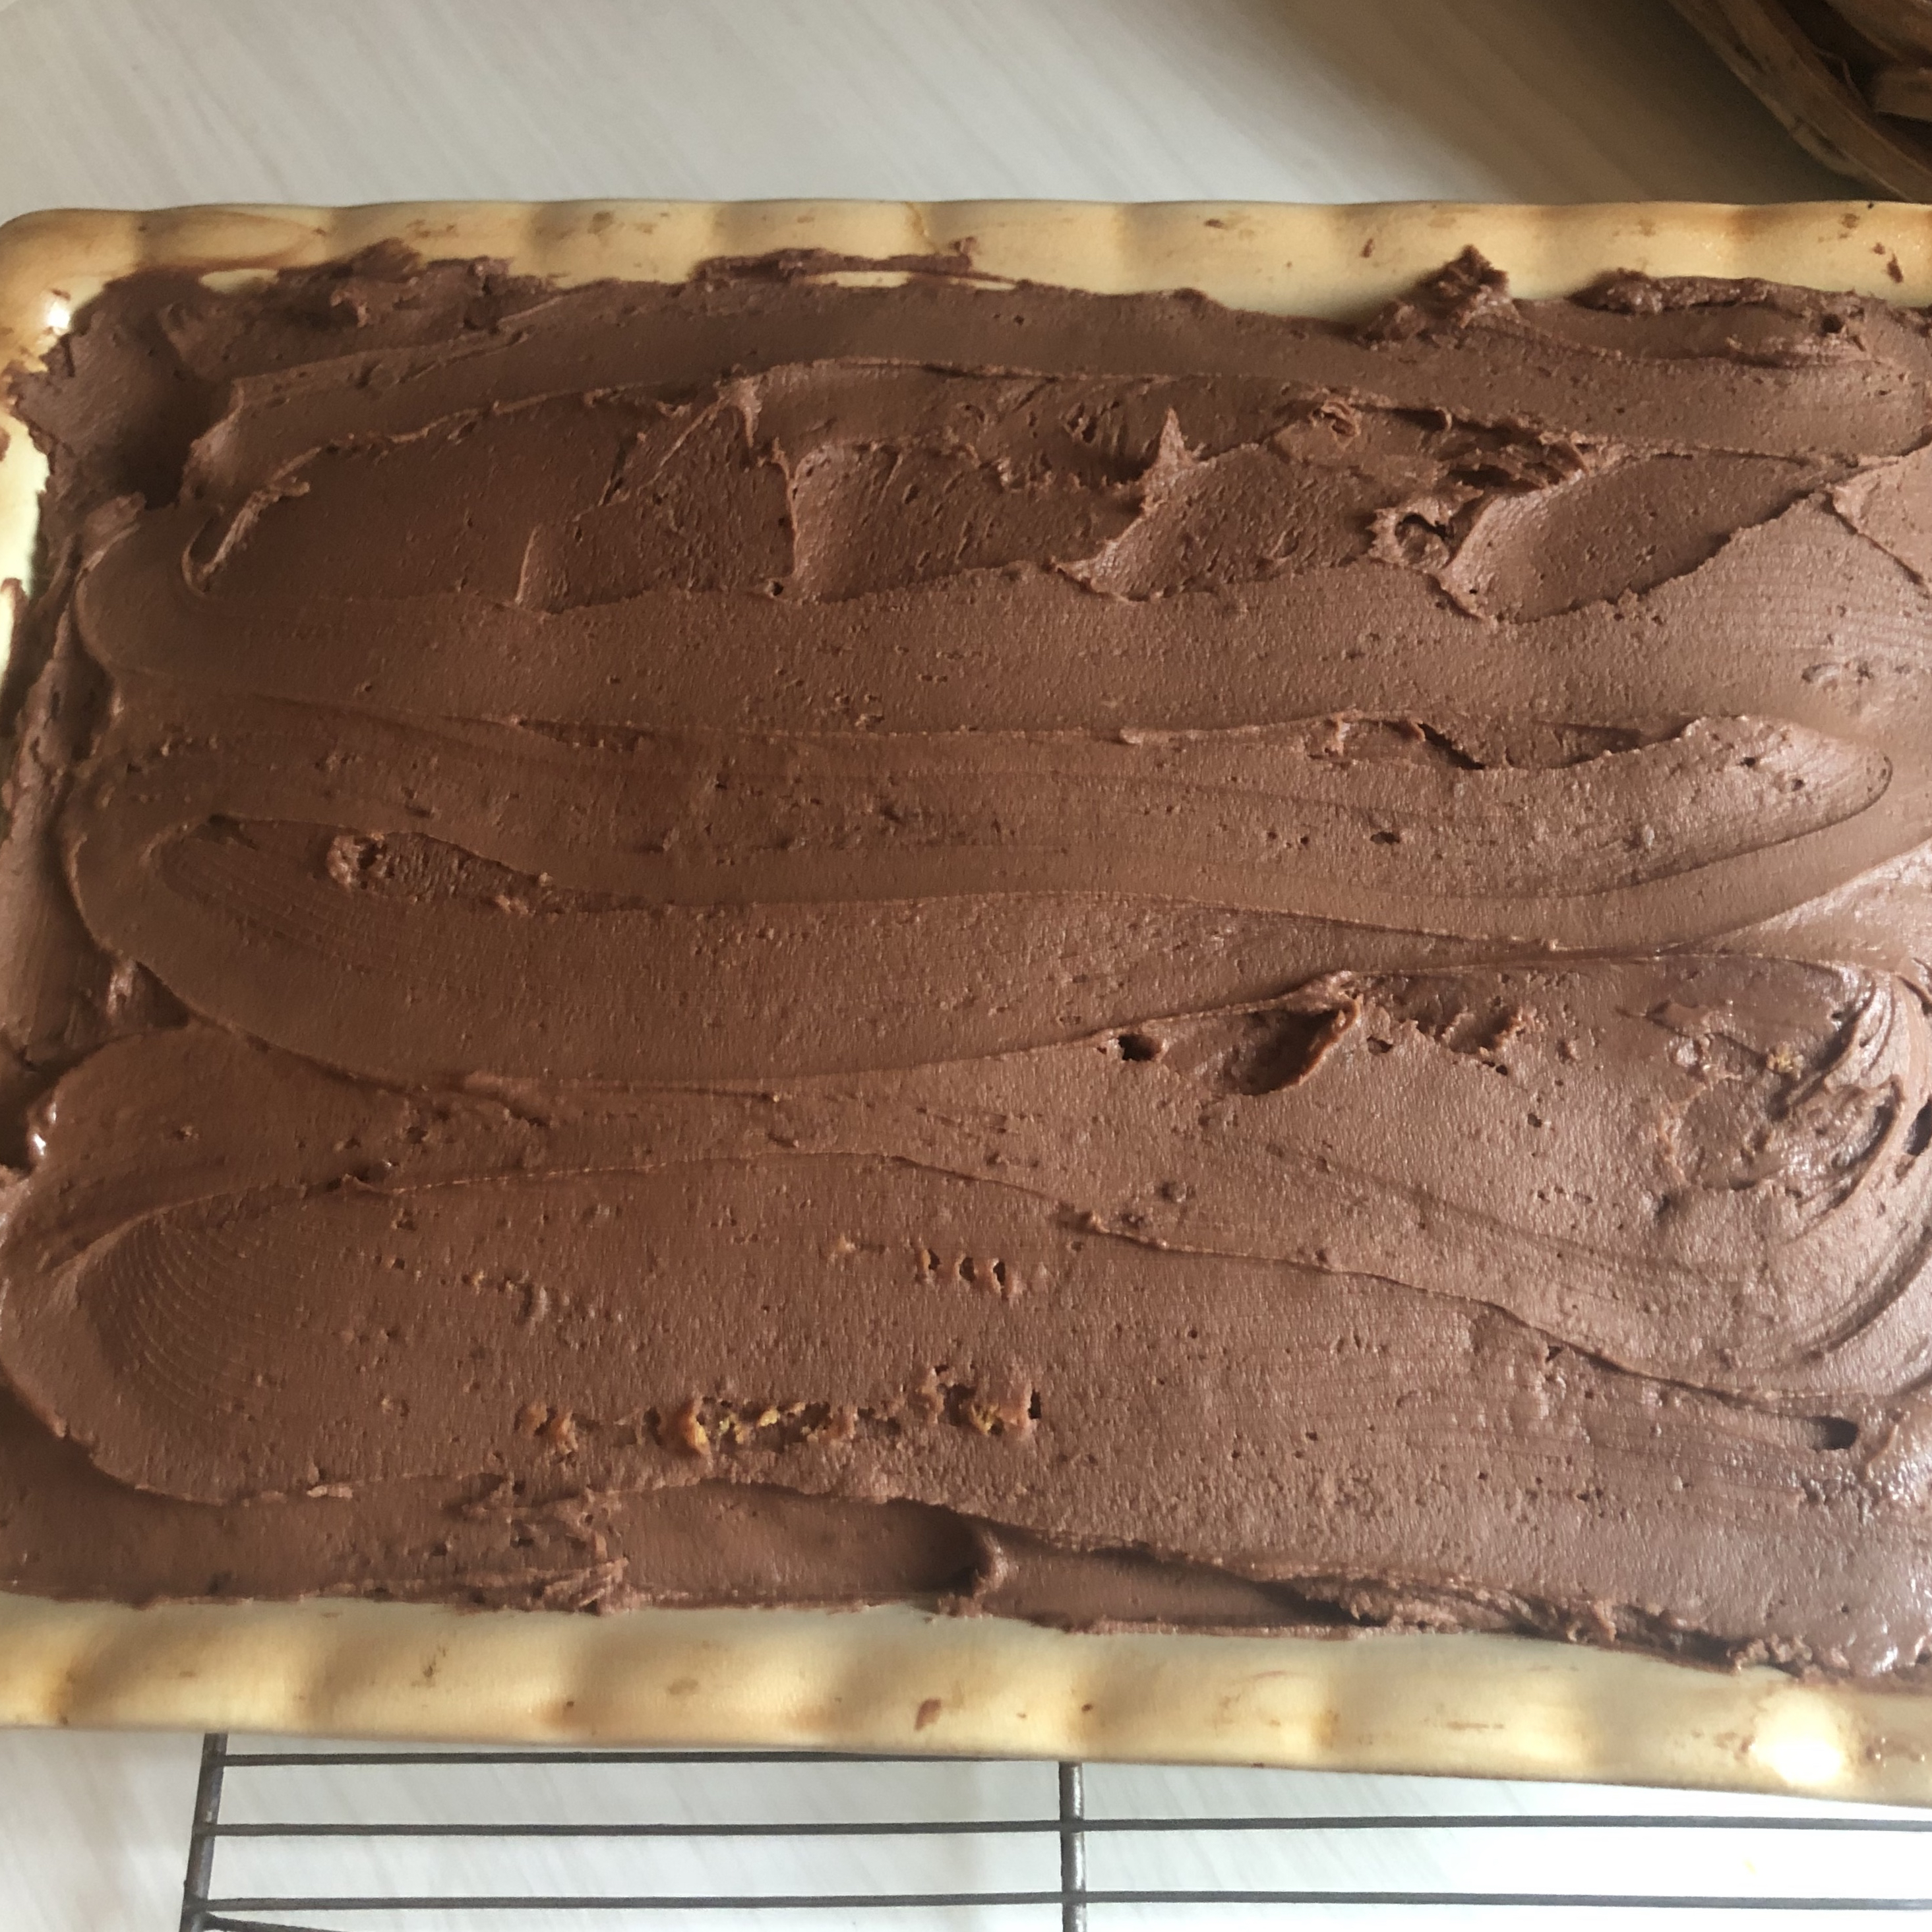 Sour Cream Chocolate Frosting